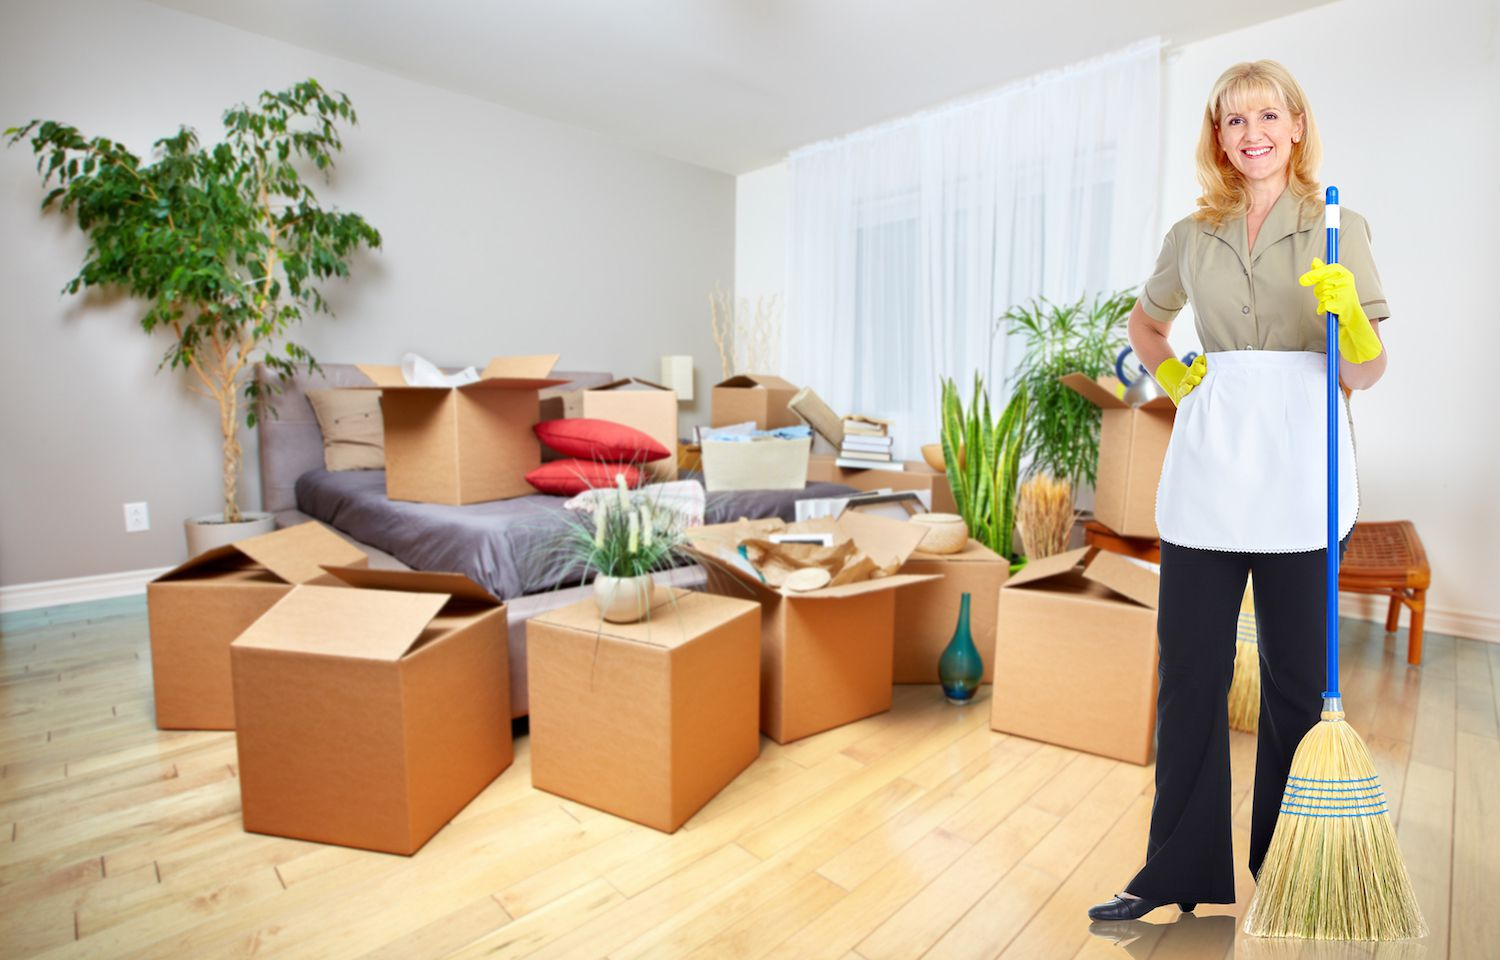 House Cleaning – is This the Job for You?